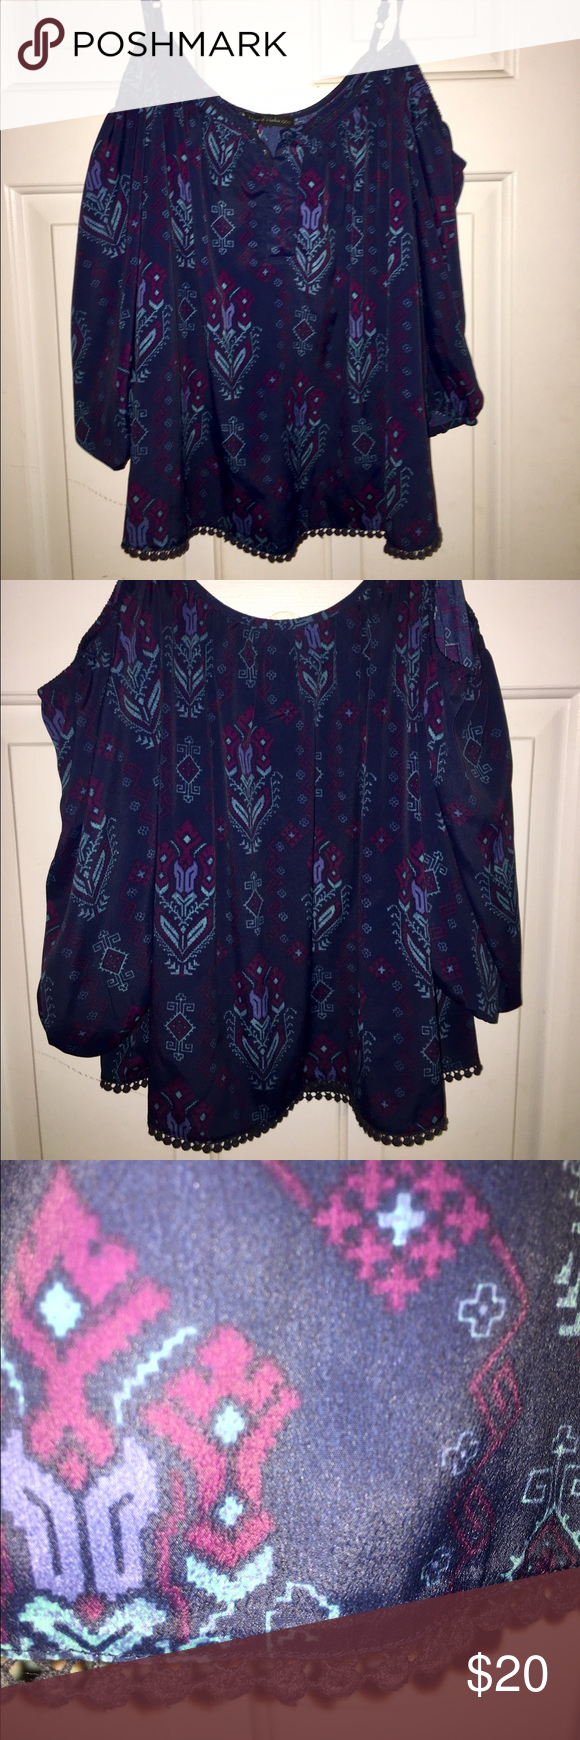 House of Harlow peasant top Peasant top with beautiful boho pattern, float, adjustable shoulder straps for perfect fit. House of Harlow 1960 (bought at PacSun) House of Harlow 1960 Tops Blouses